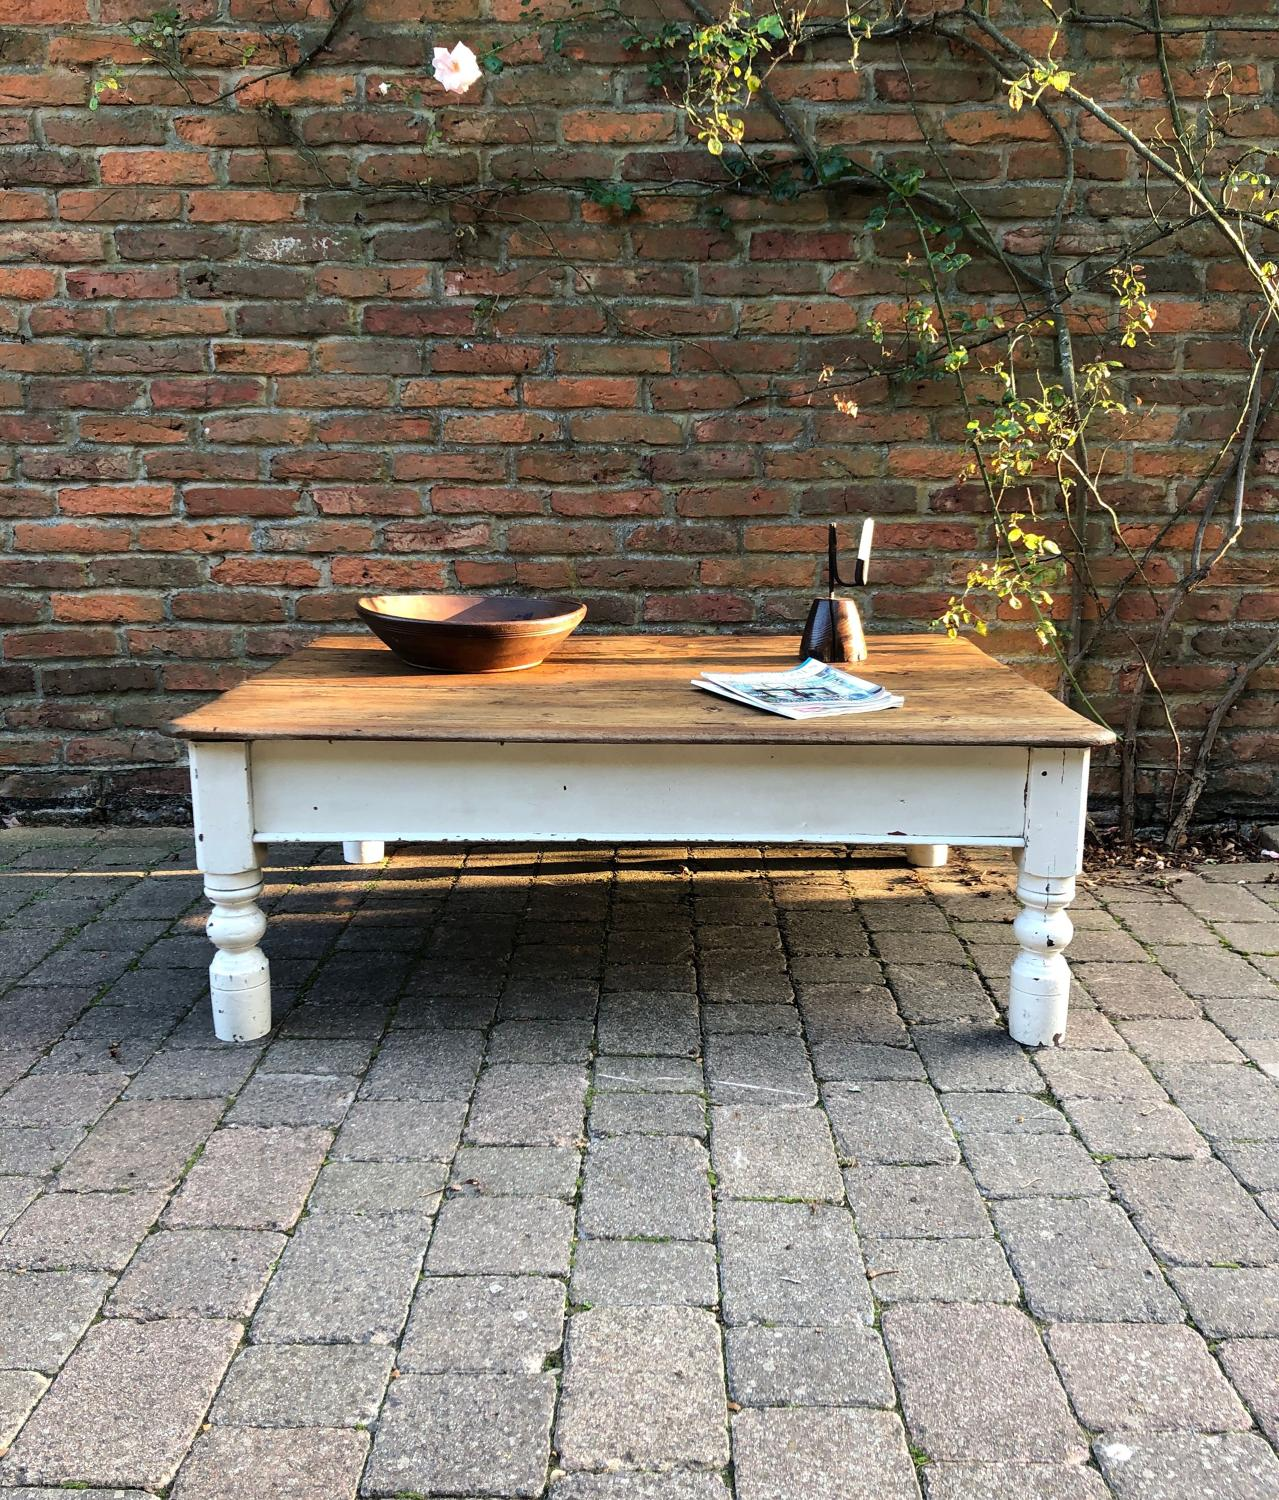 Victorian Pine Table made Coffee Table - Original Paint Base